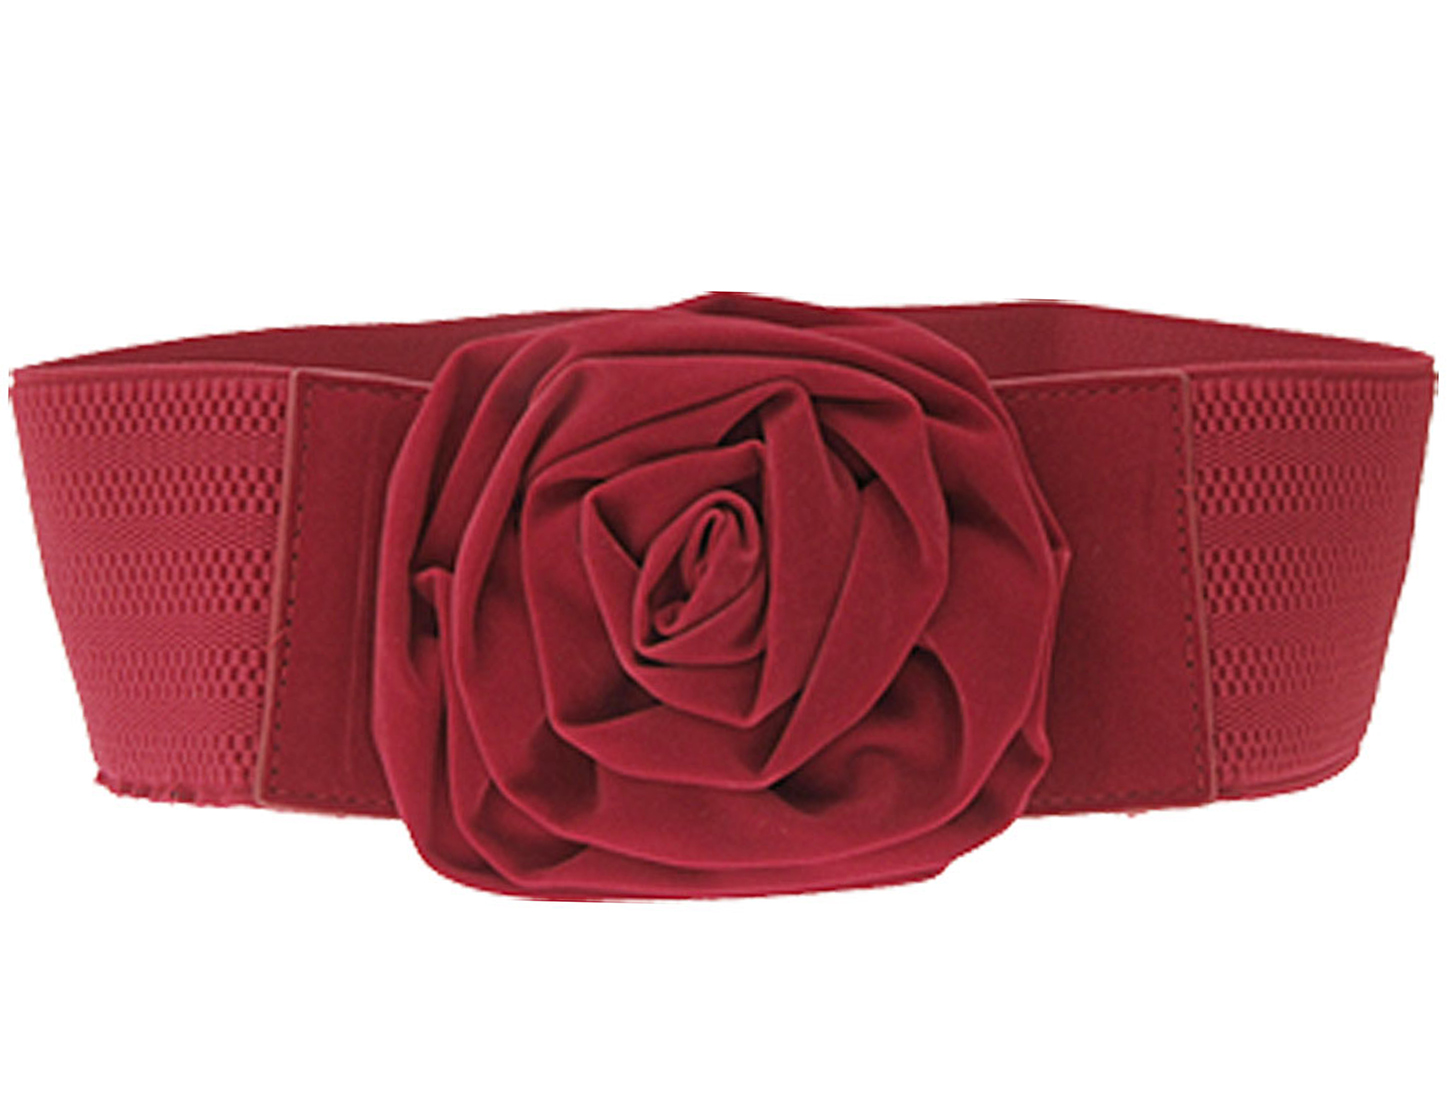 Adjustable Flower Design Buckle Ladies Waist Belt Red